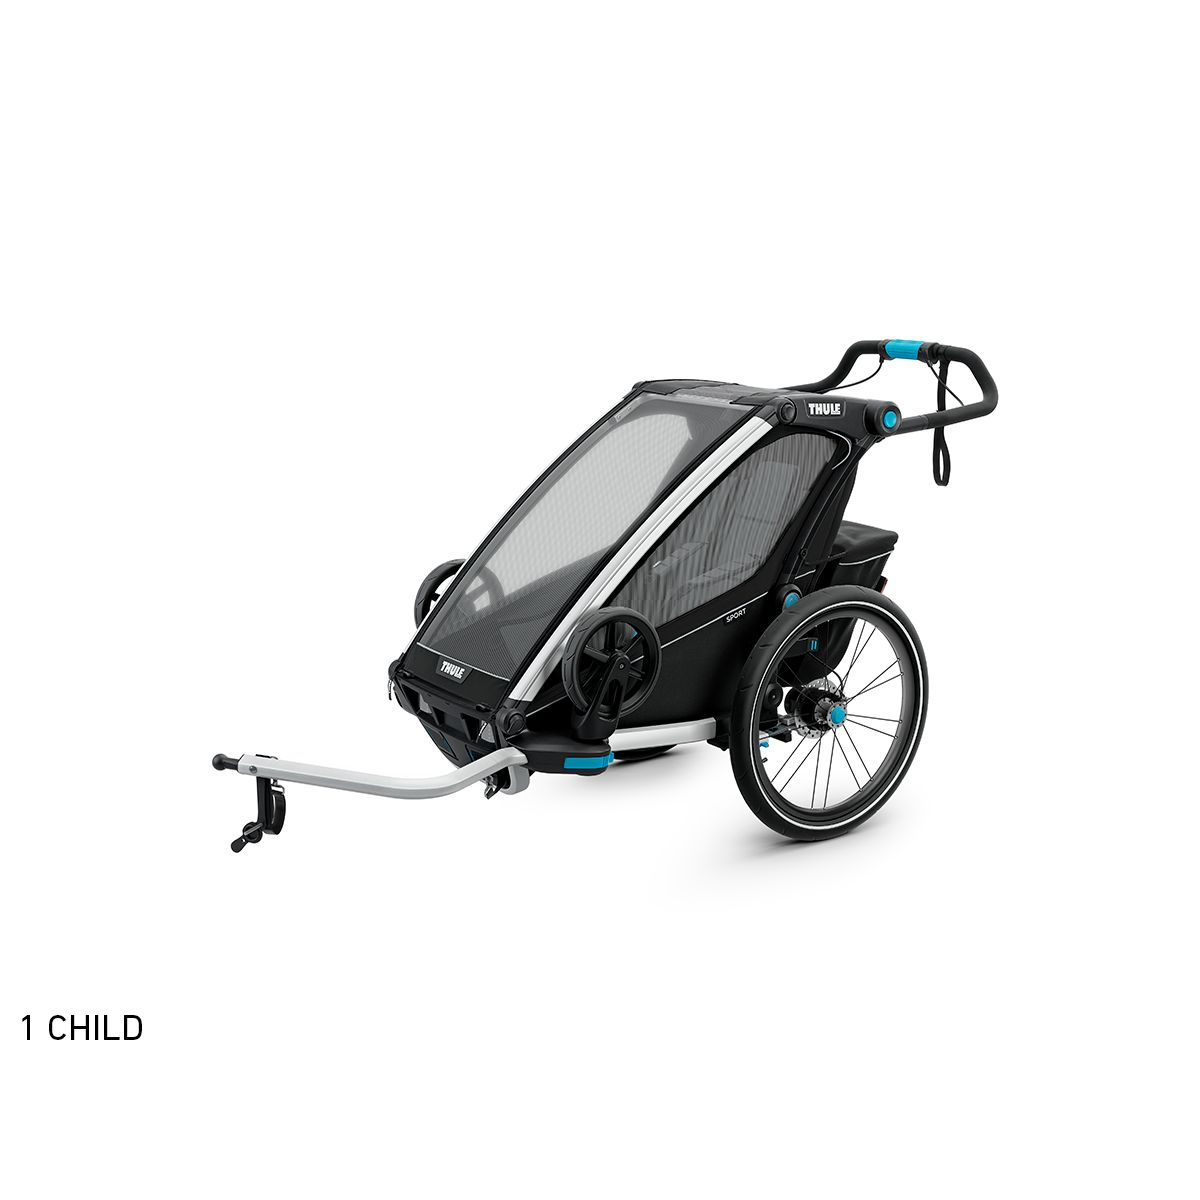 Chariot Sport Black child bike trailer